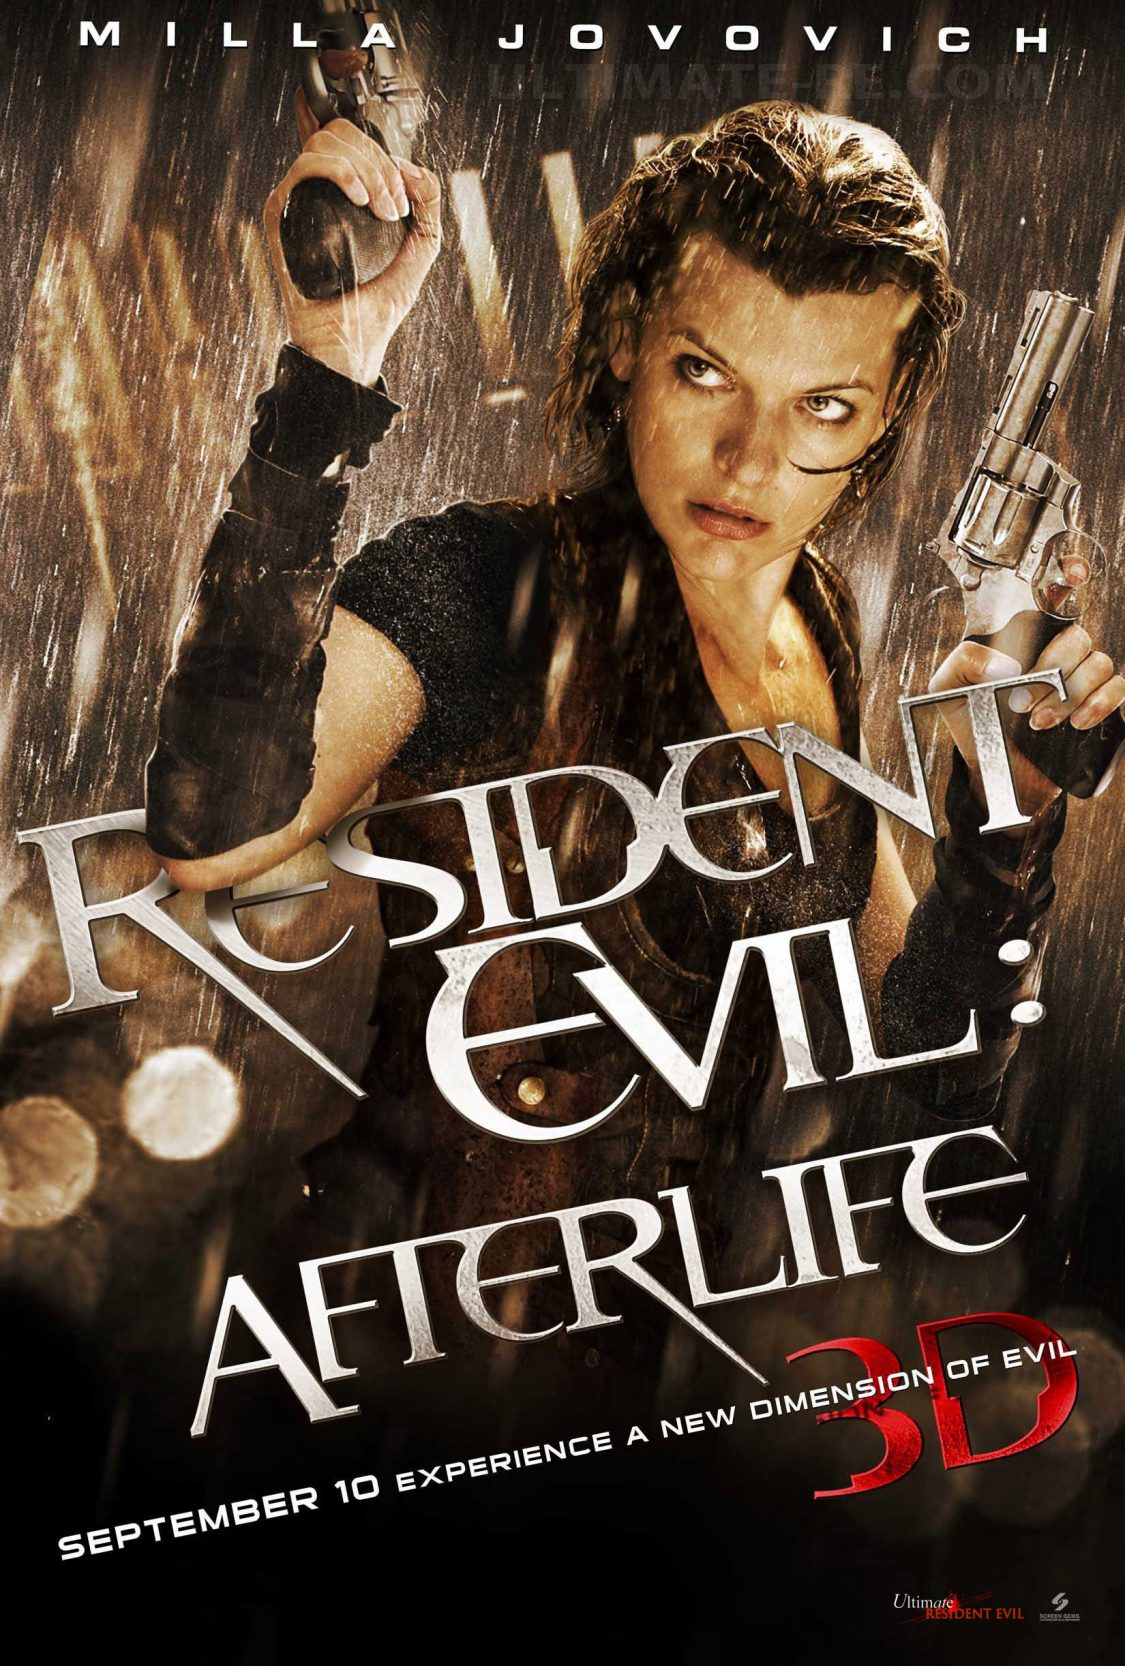 Resident Evil Afterlife 2010 In 2020 Resident Evil Movie Resident Evil Best Zombie Movies